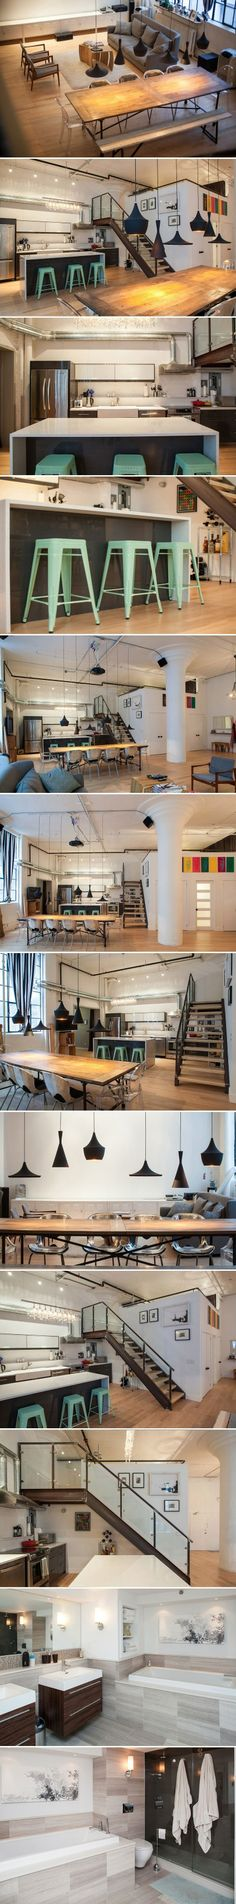 Great loft space